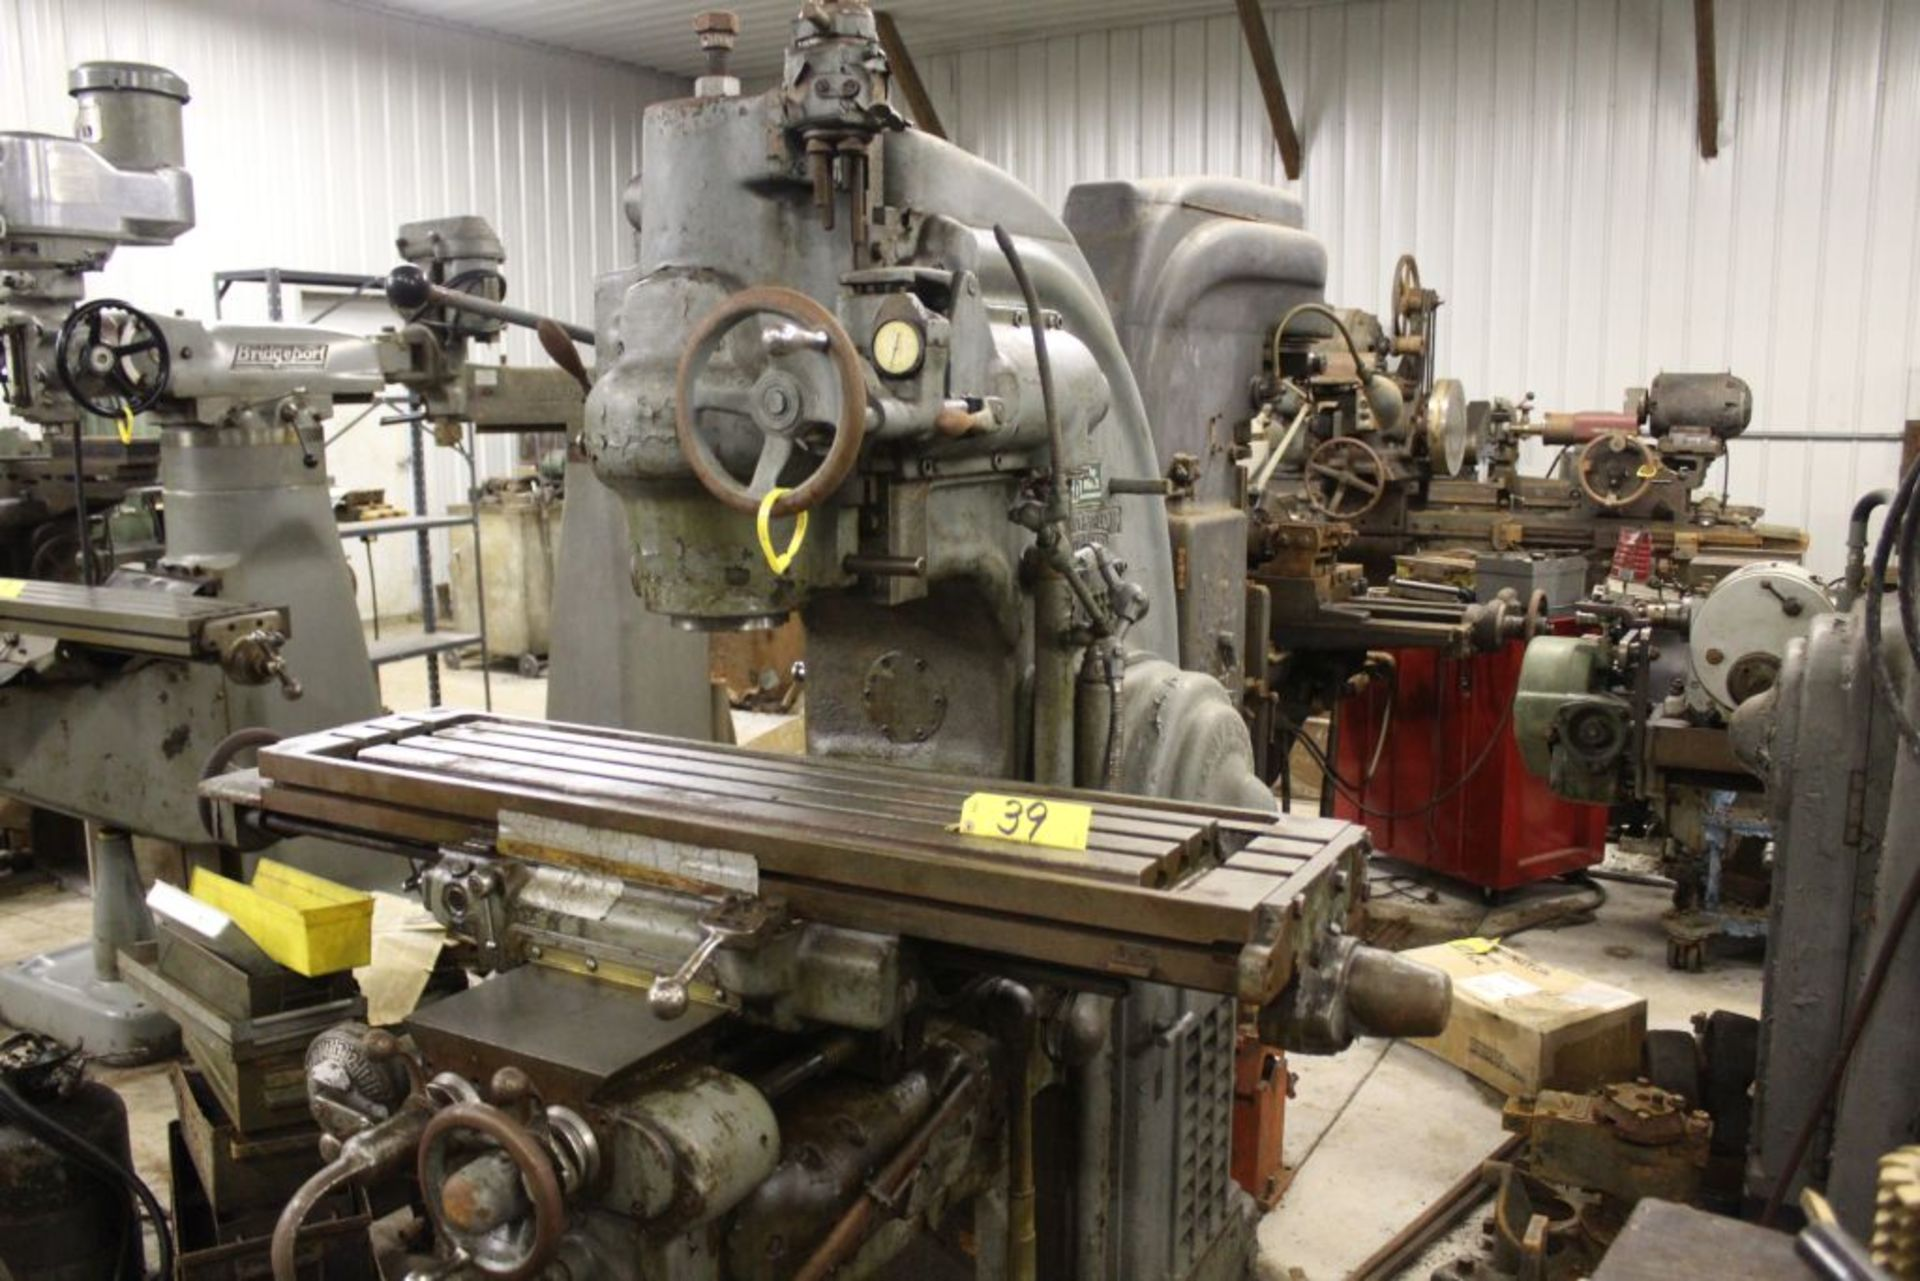 """Milwaukee K/T mill, model CH No. 2, sn 2-8910, 5 hp., 51"""" x 12"""" bed. - Image 2 of 4"""